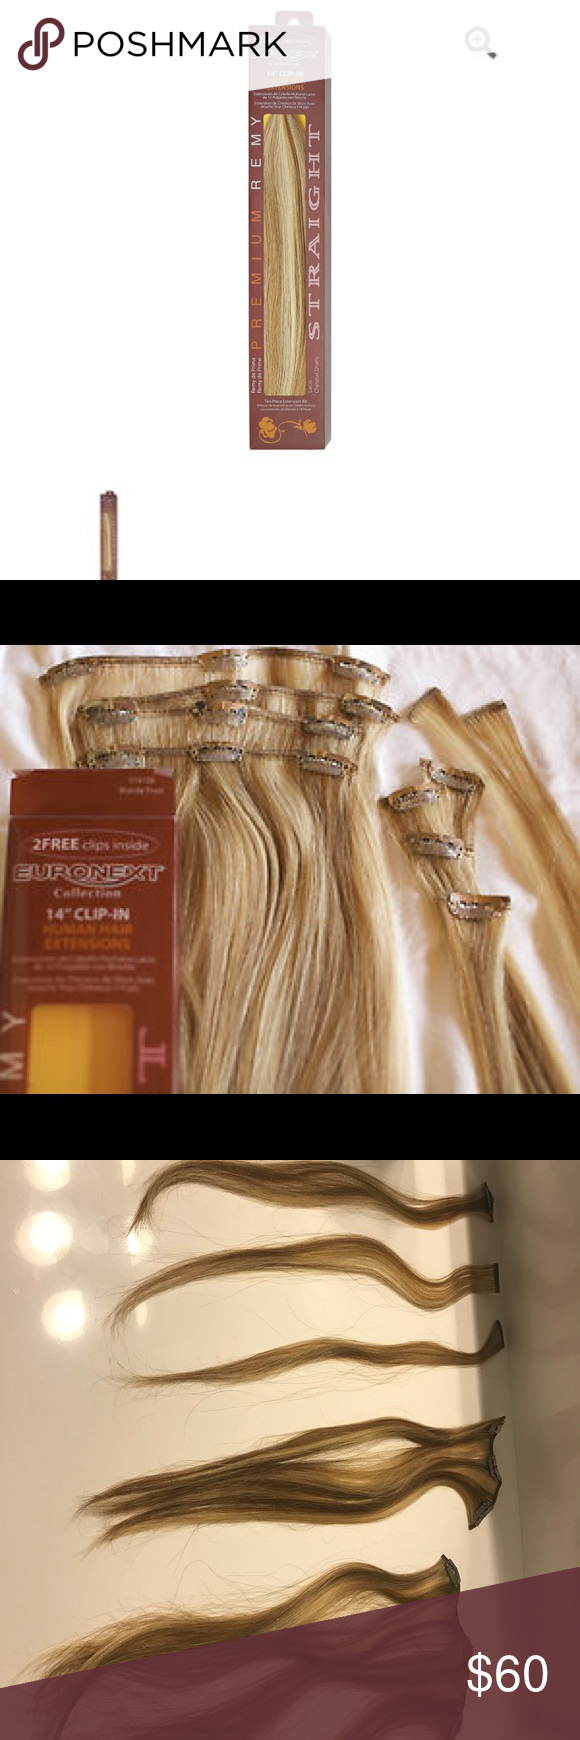 Euronext 14 Inch Remy Clip In Hair Extensions My Posh Closet